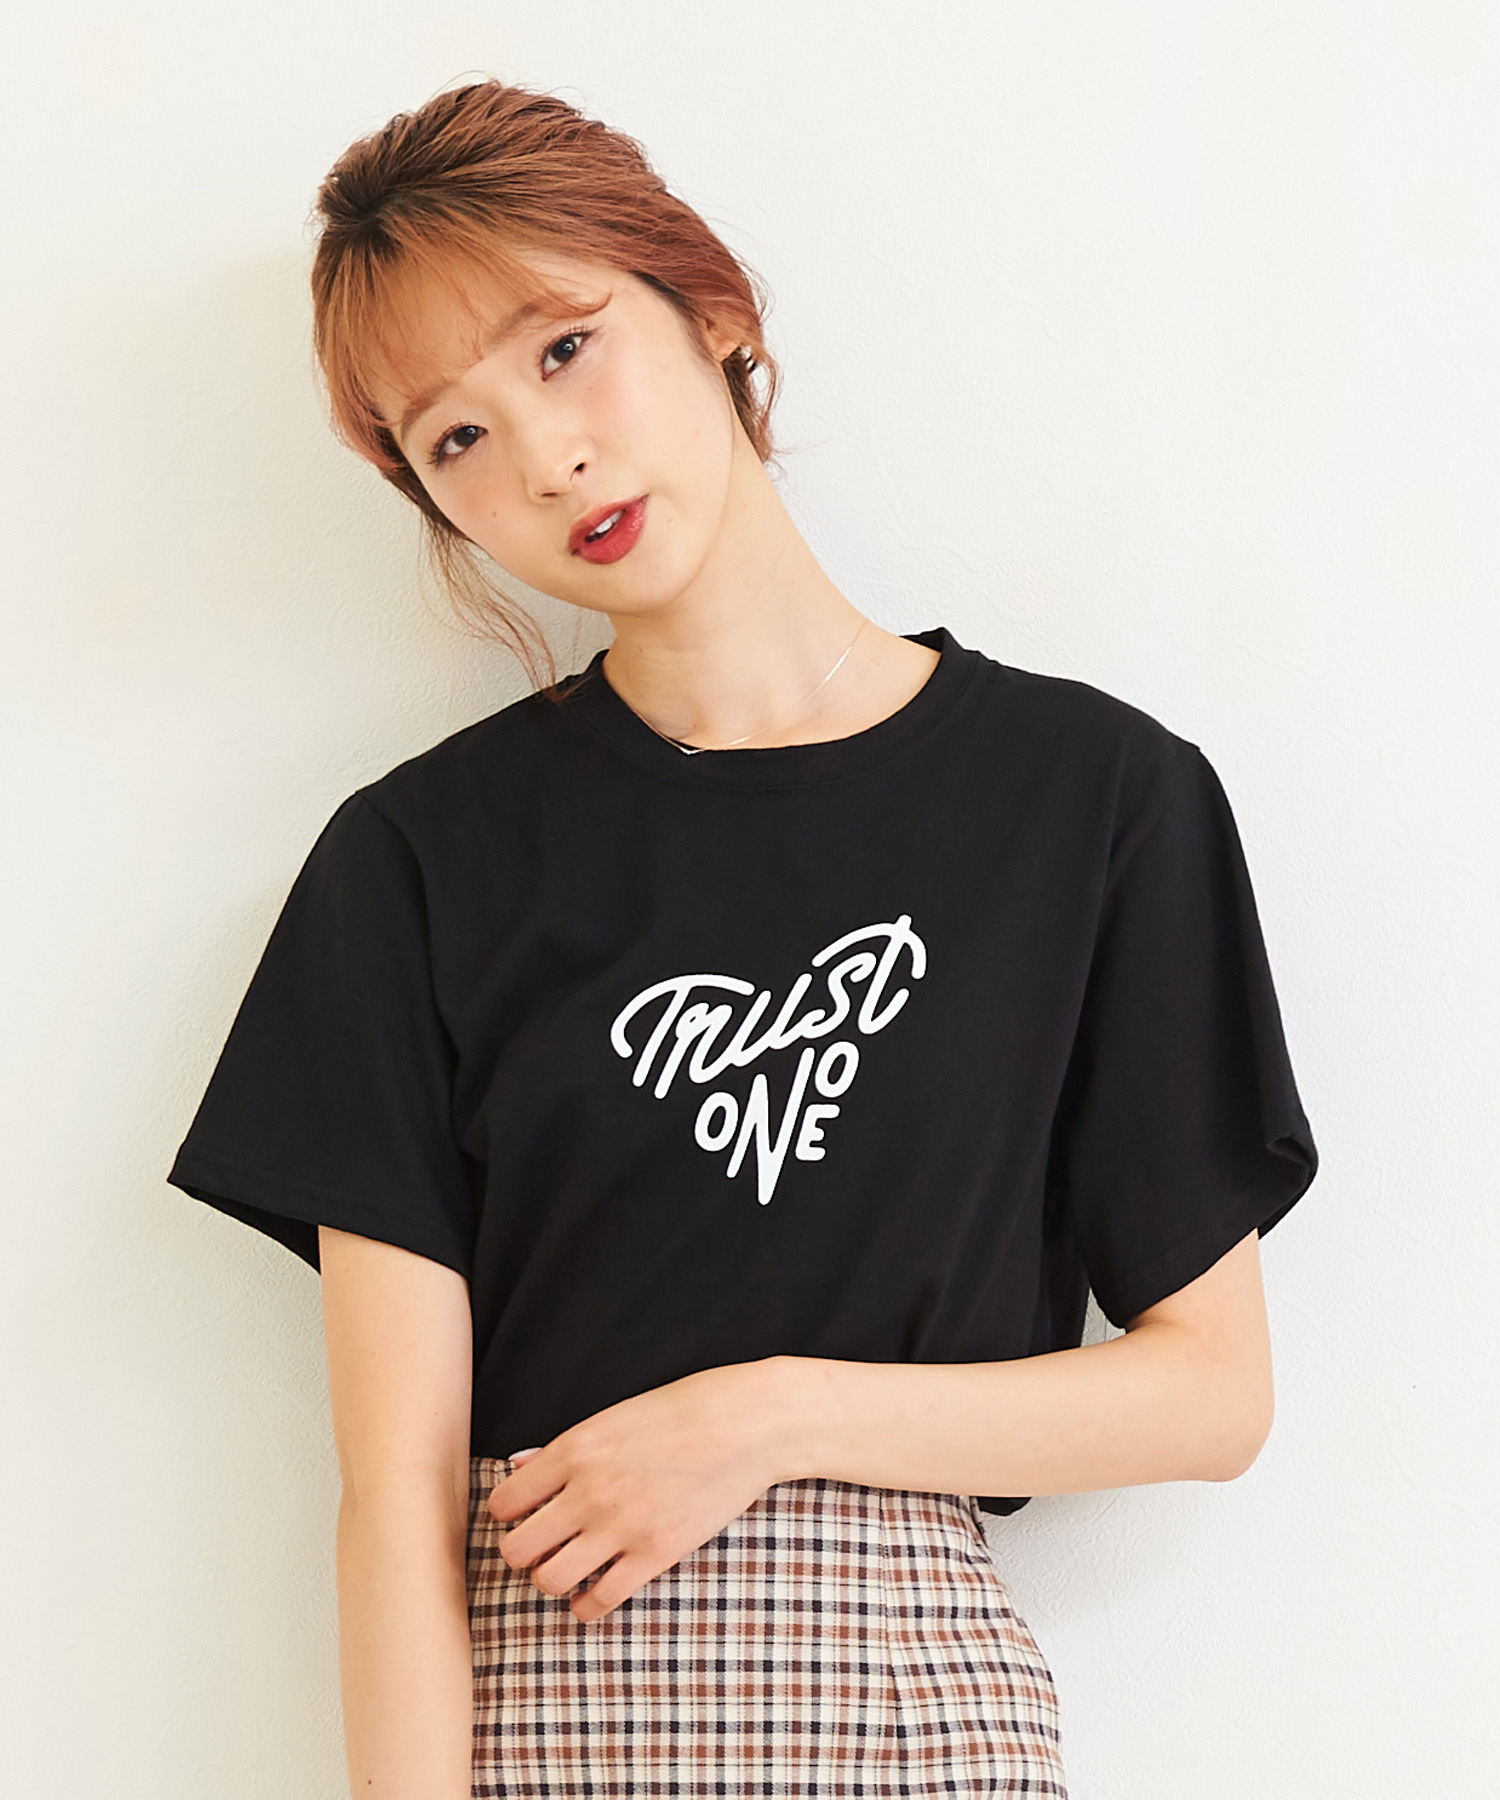 TRUST ONE Tシャツ